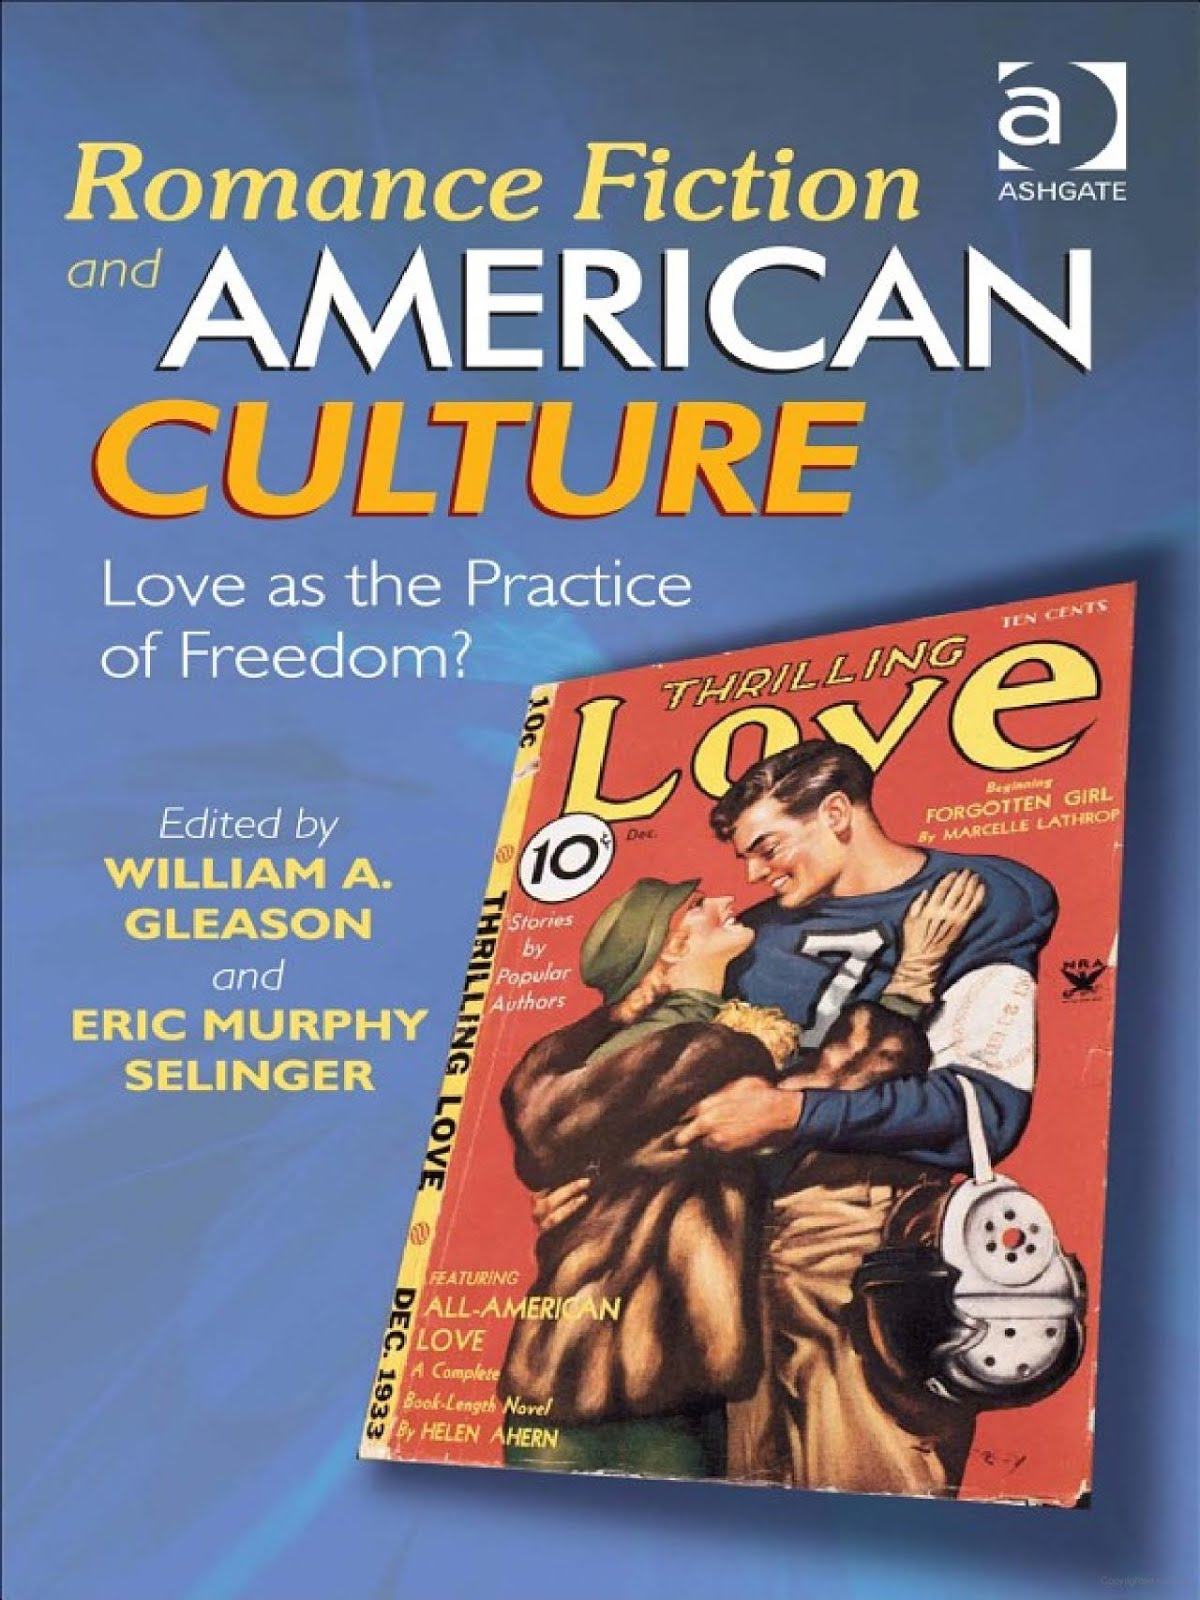 Romance Fiction and American Culture: Love as the Practice of Freedom?